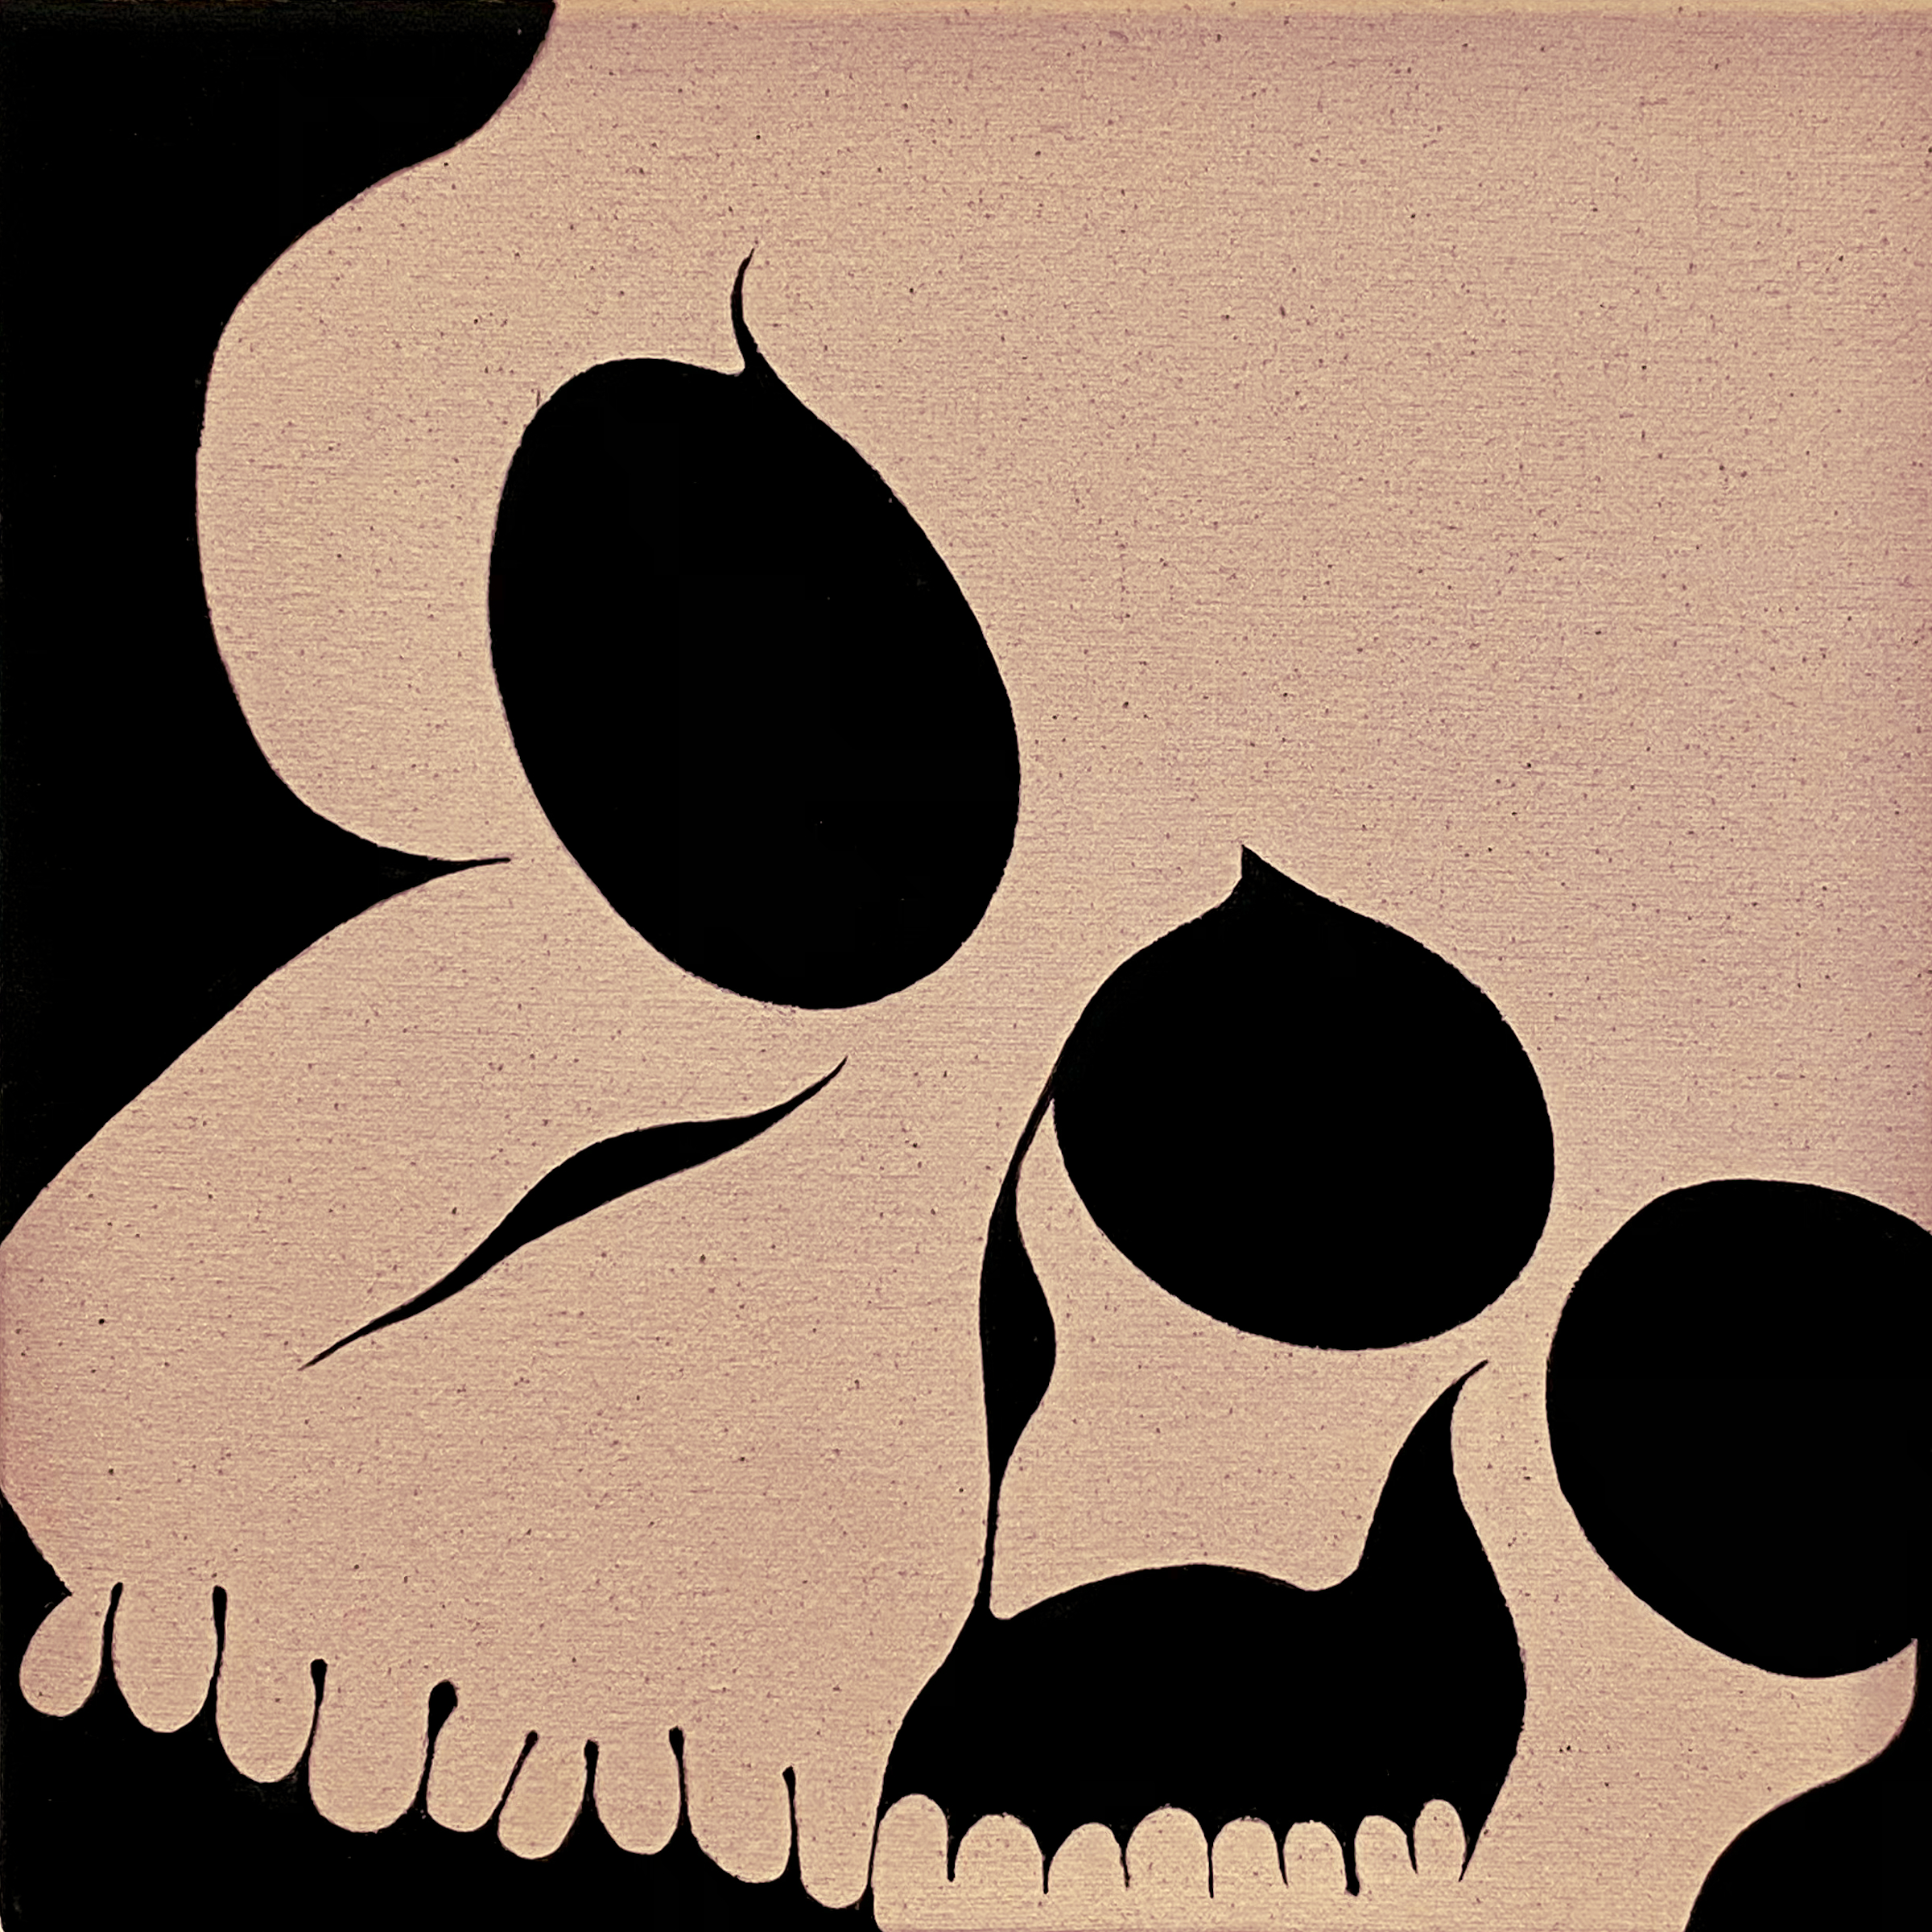 A beige and black graphic of an abstracted skull.